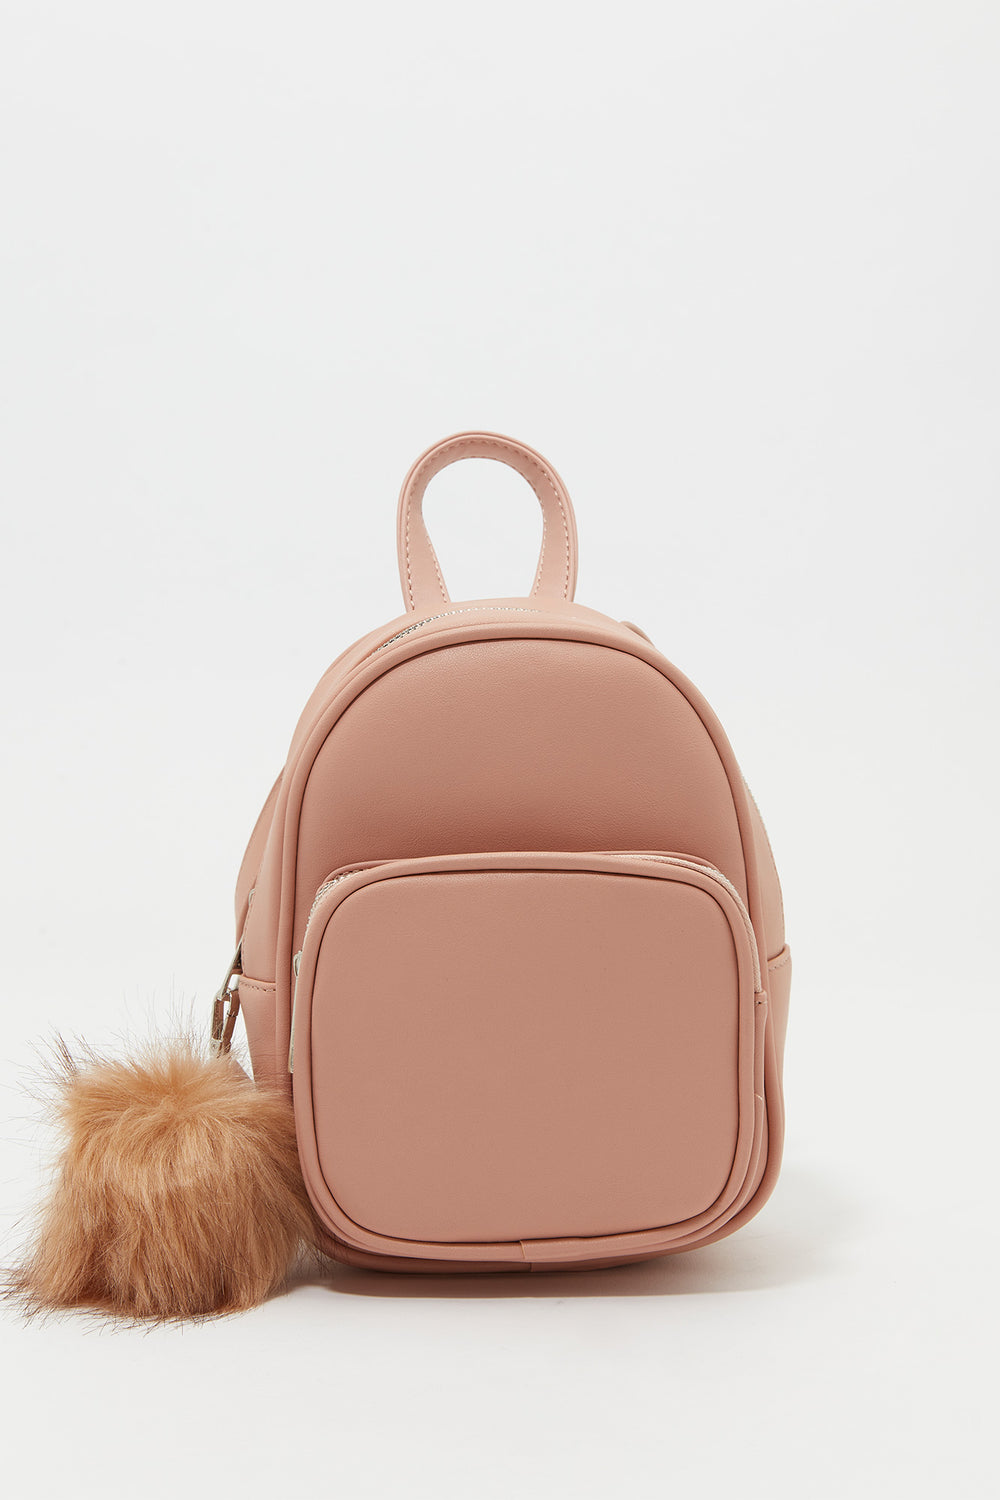 Furry Pom Pom Backpack Rose